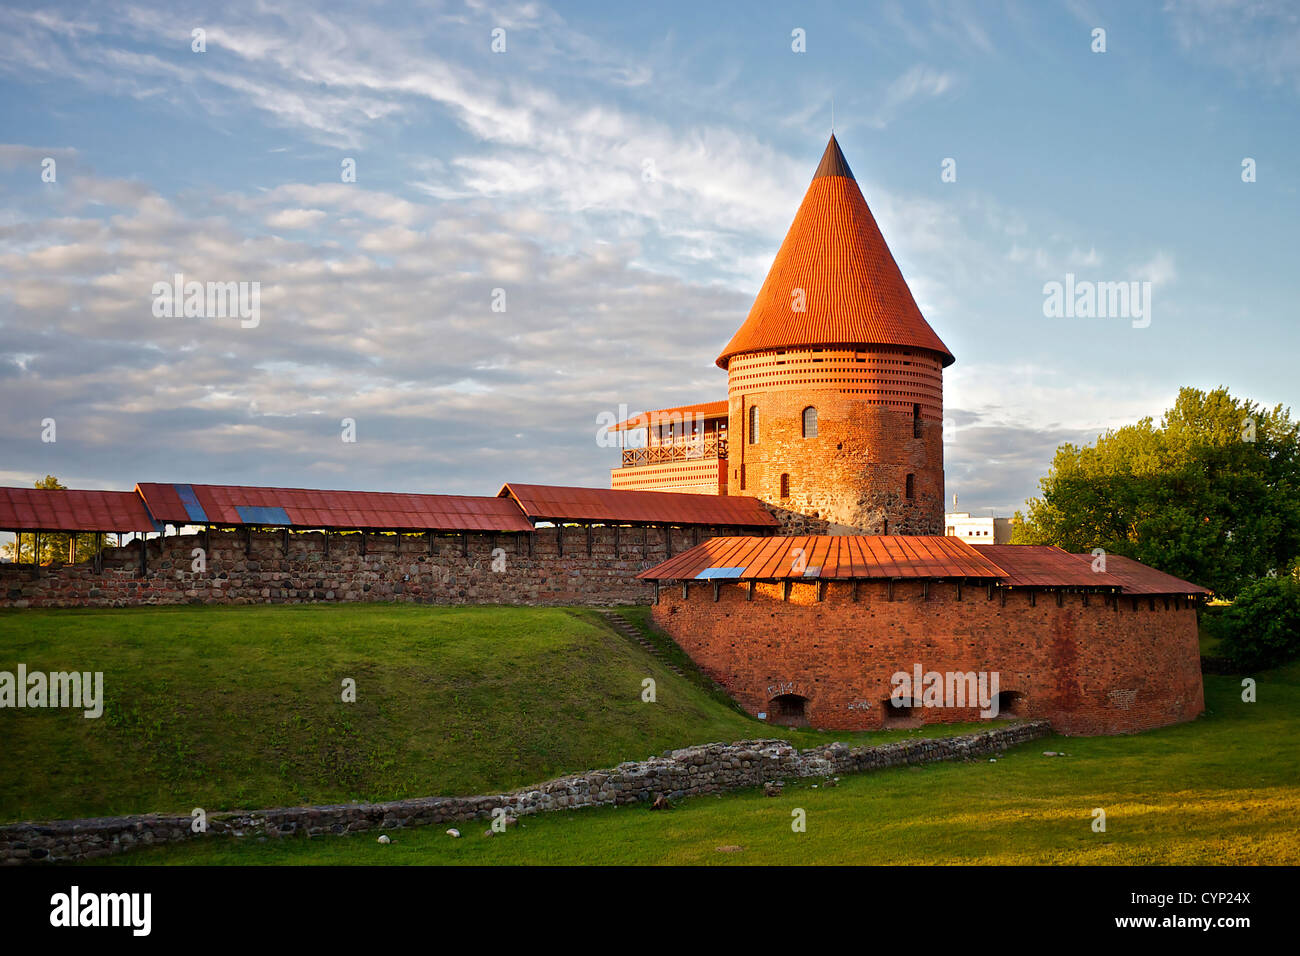 Kaunas city castle in sunset with clouds in the sky. - Stock Image